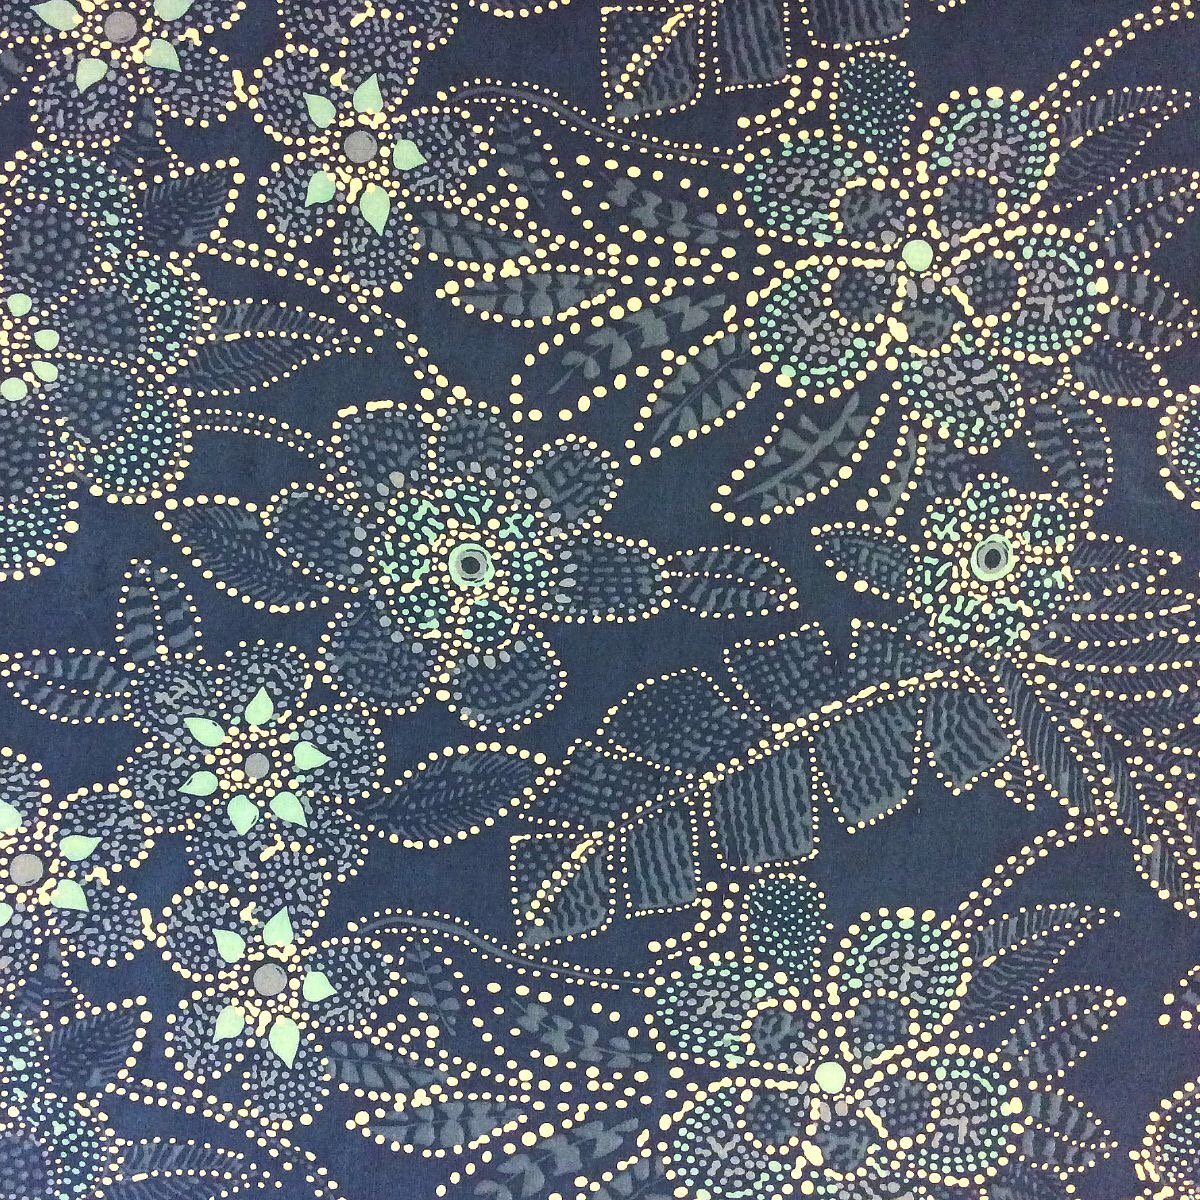 Batik Silk Large Scale Blue White Studded Flowers Silk Fabric Drapery Fabric Taffeta Weave WB129